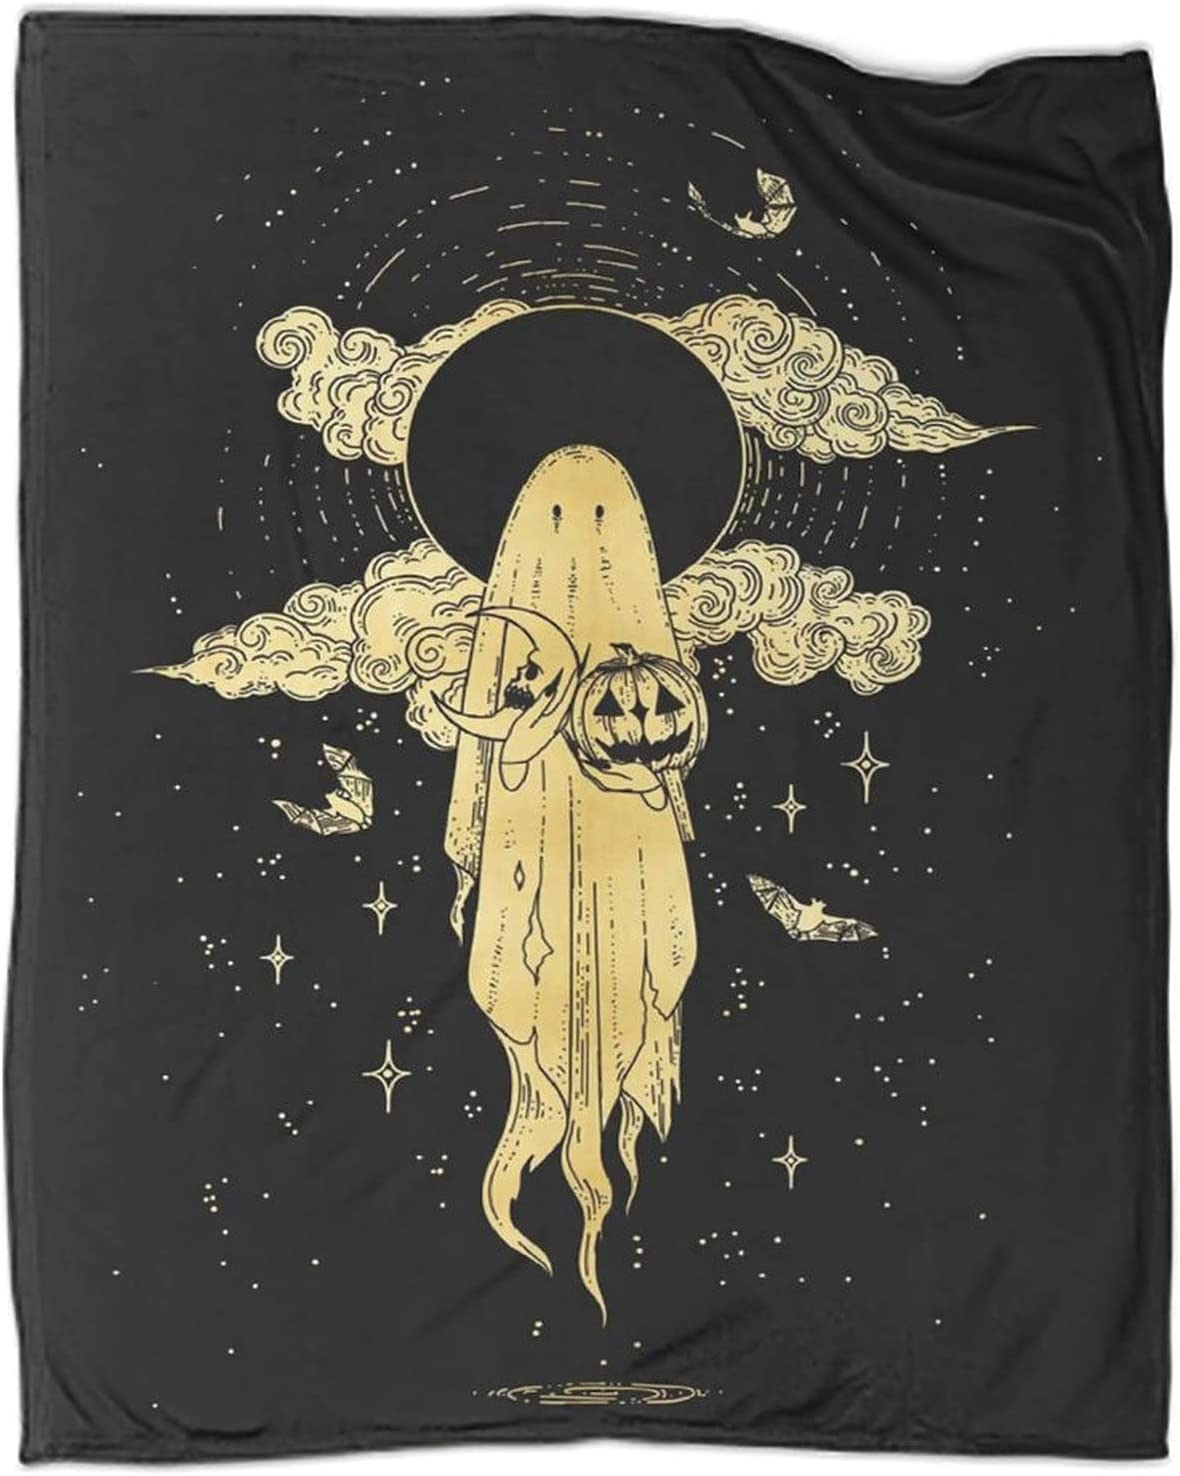 XXCC Fashion Black Gold Style Samhain Ghost Lightweight Blanket Su Throw Shipping included